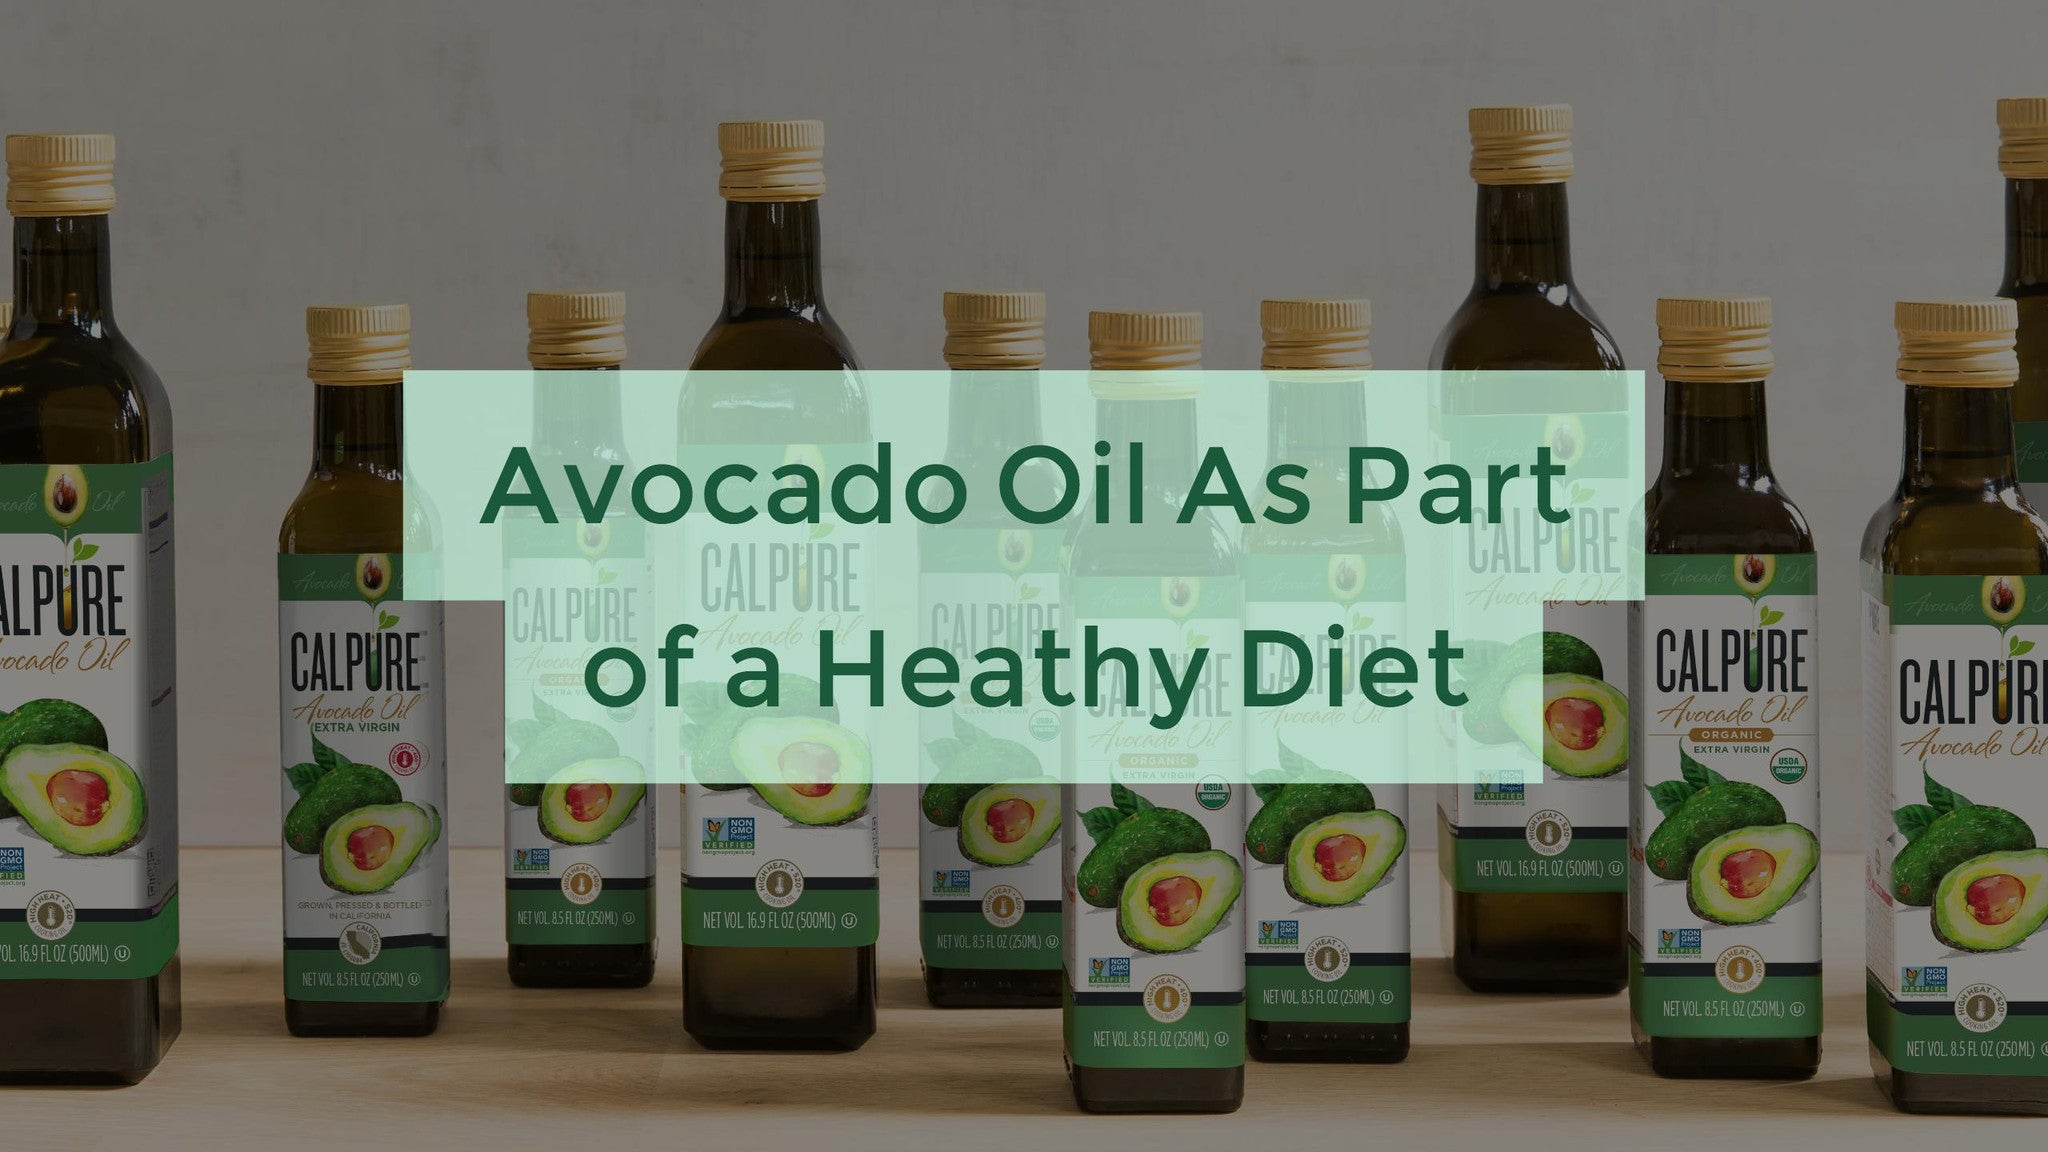 What makes avocado oil healthy?